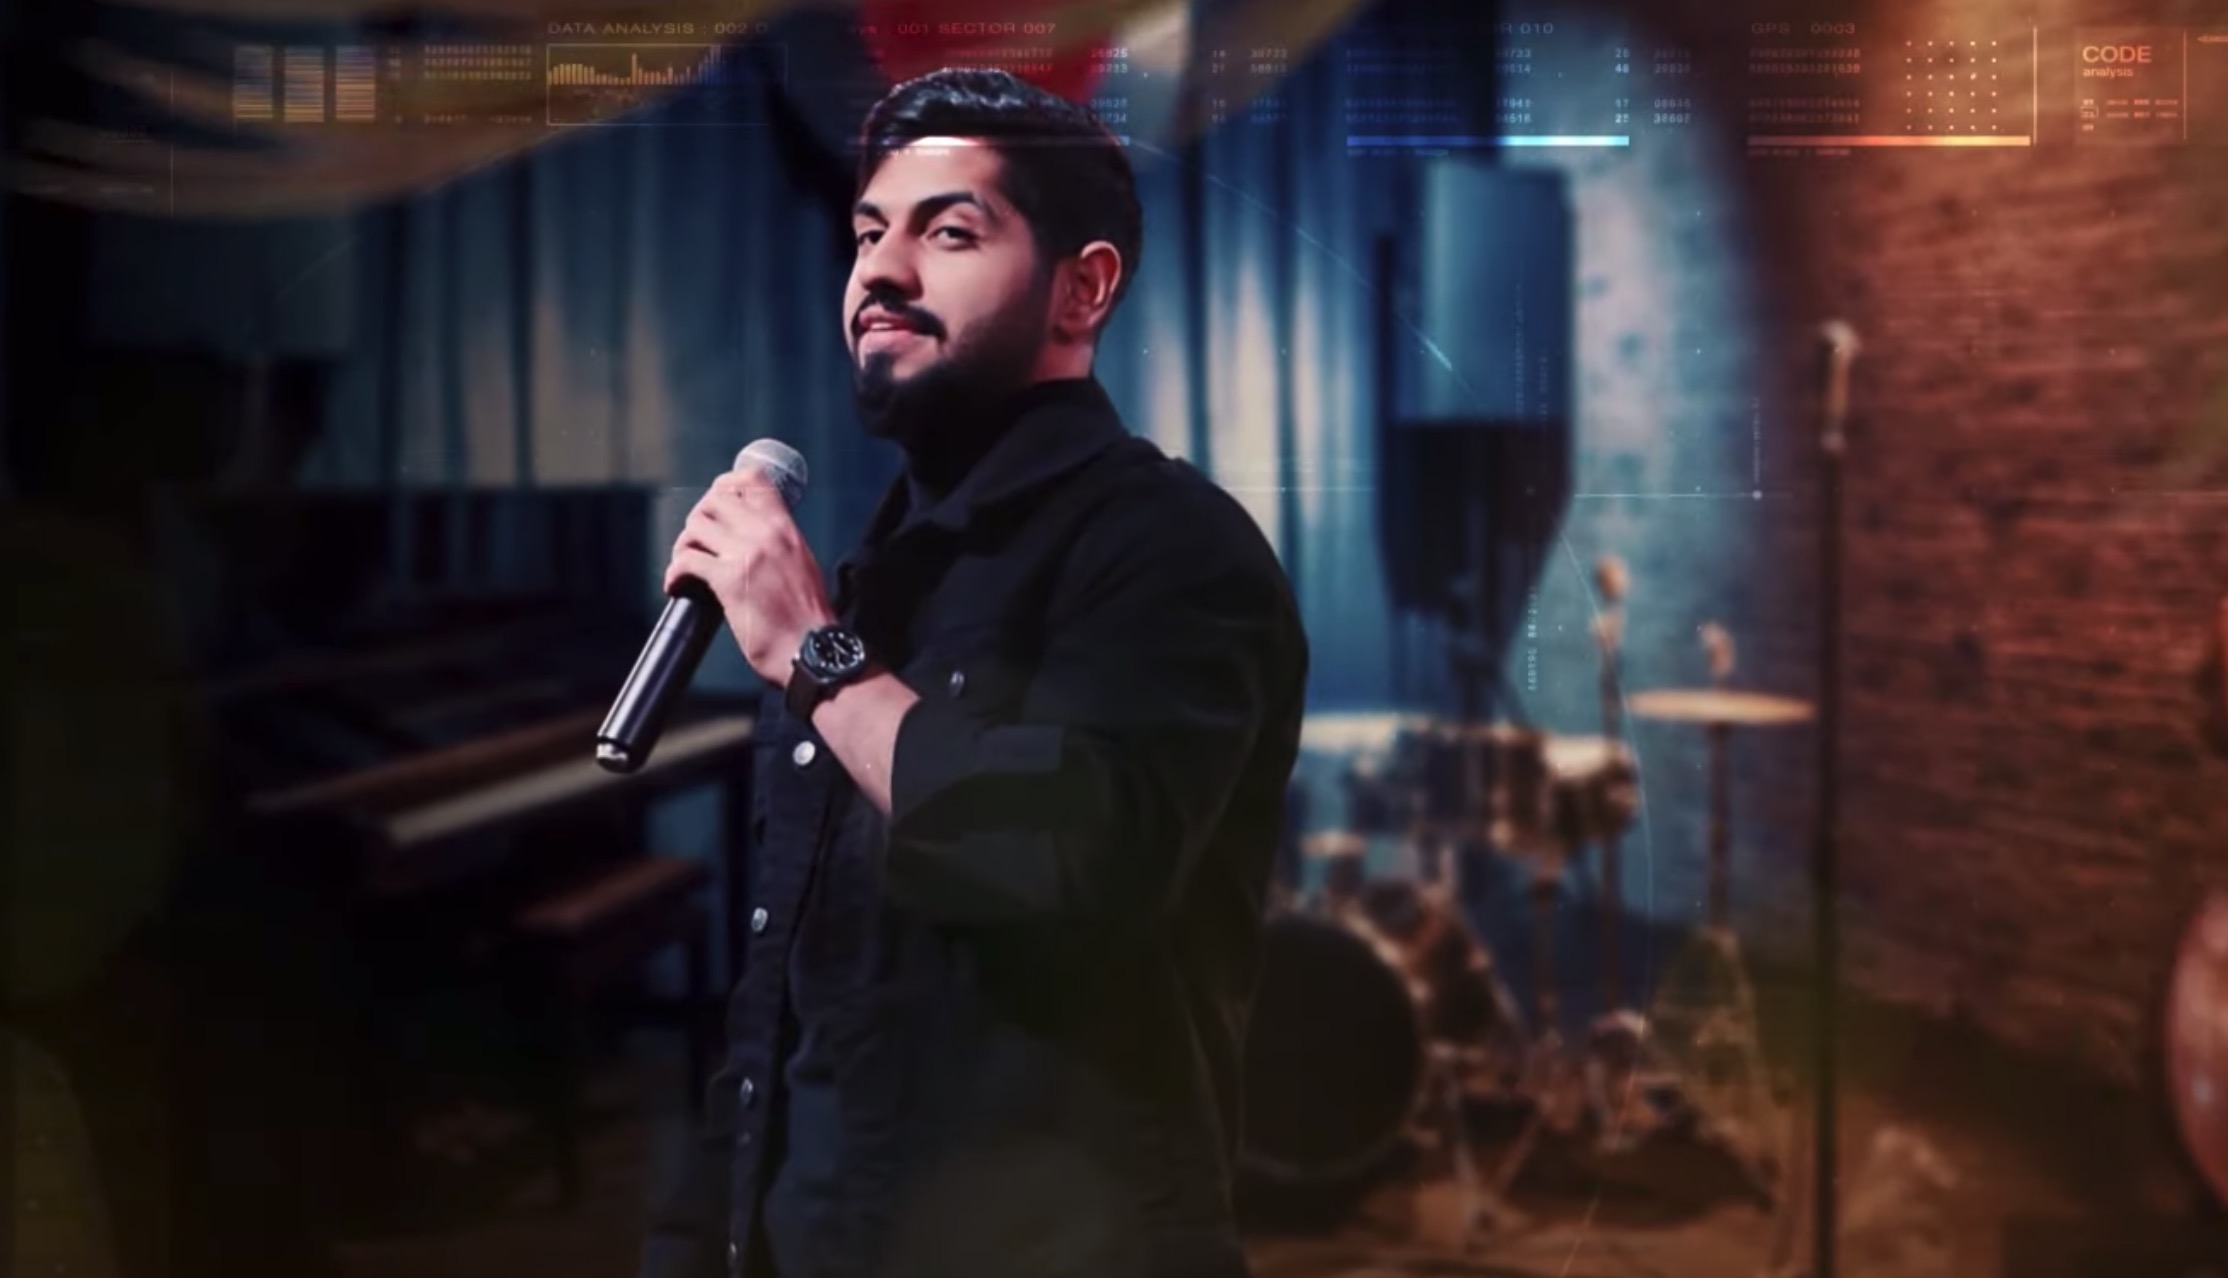 Arabsounds net   New Arabic songs, music videos, albums & more!